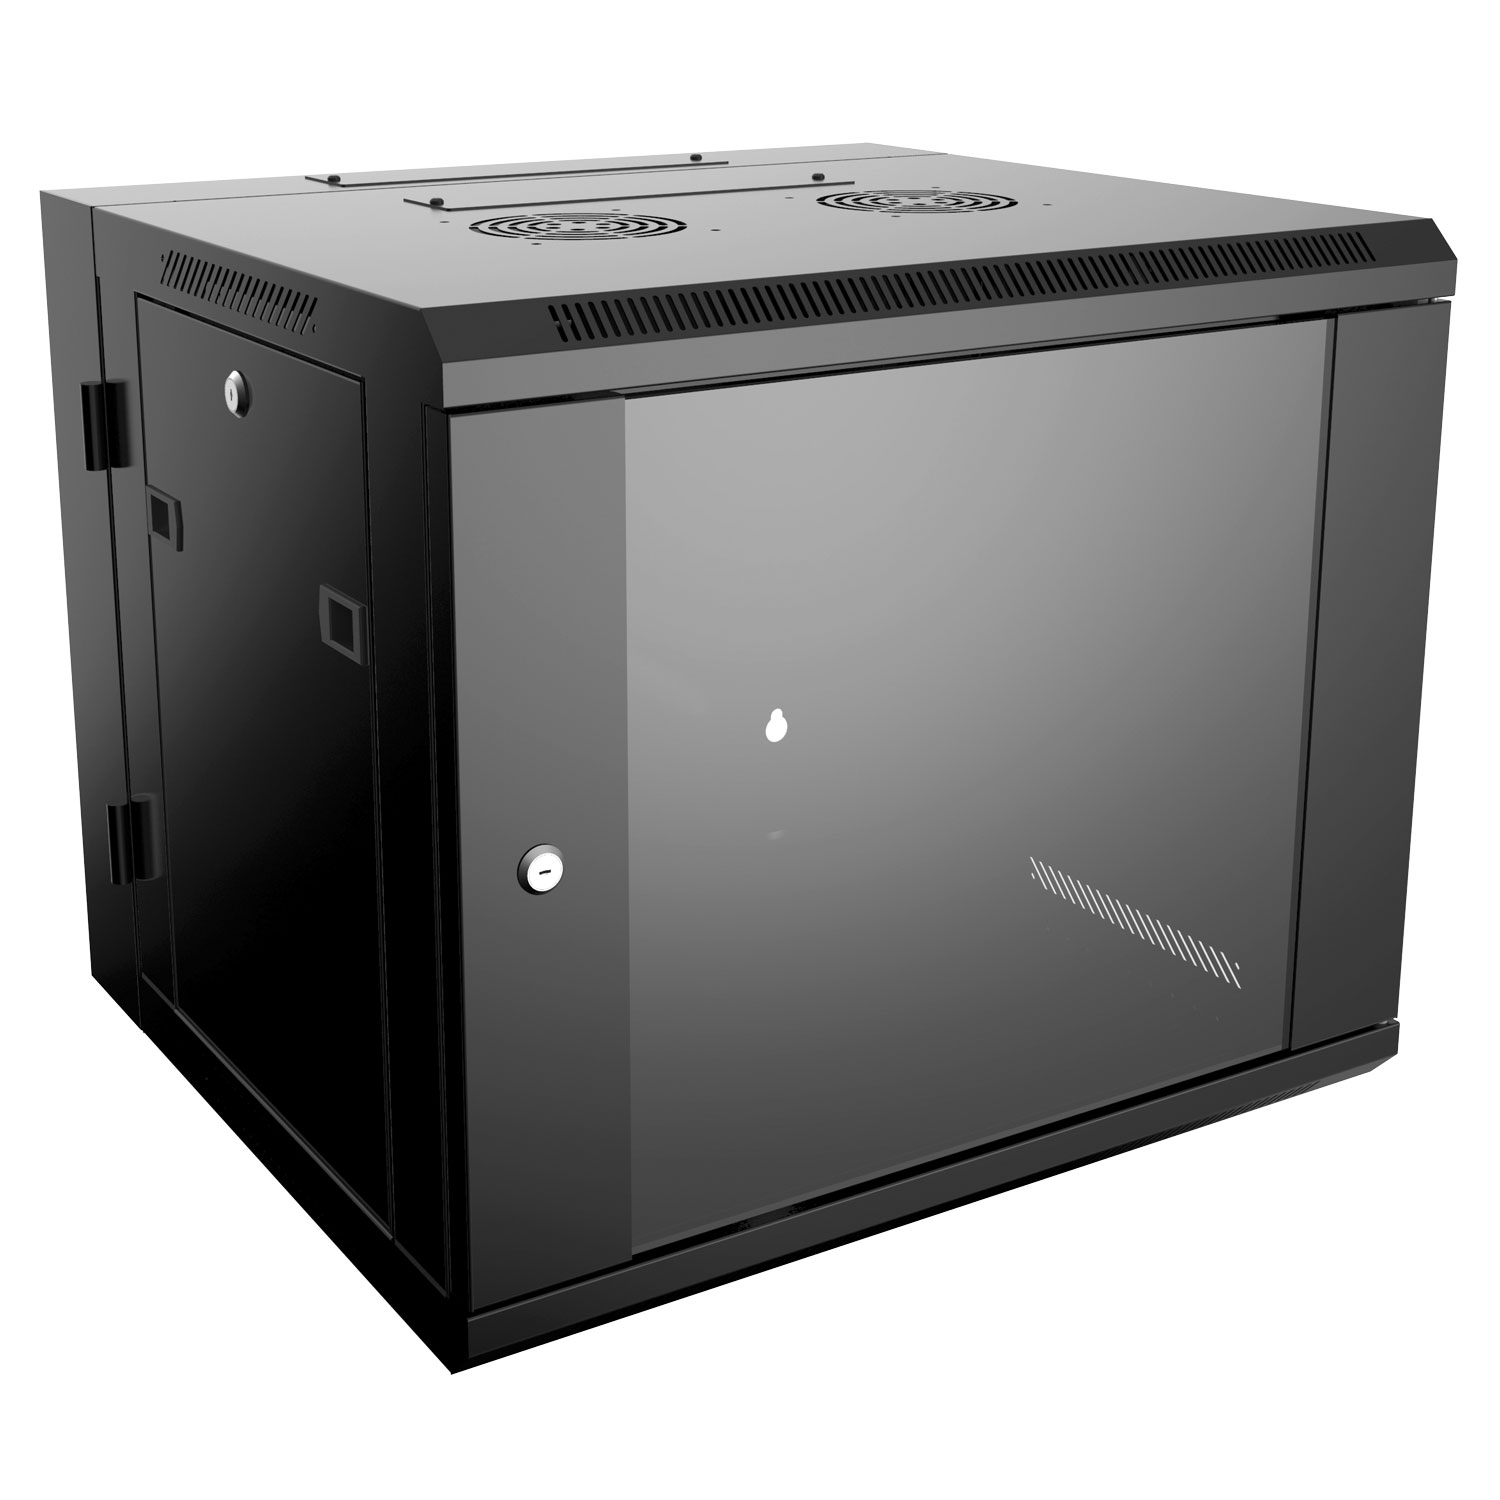 RB-SW9 - RB-SW Series Economy Swing-Out Wall Mount Cabinet